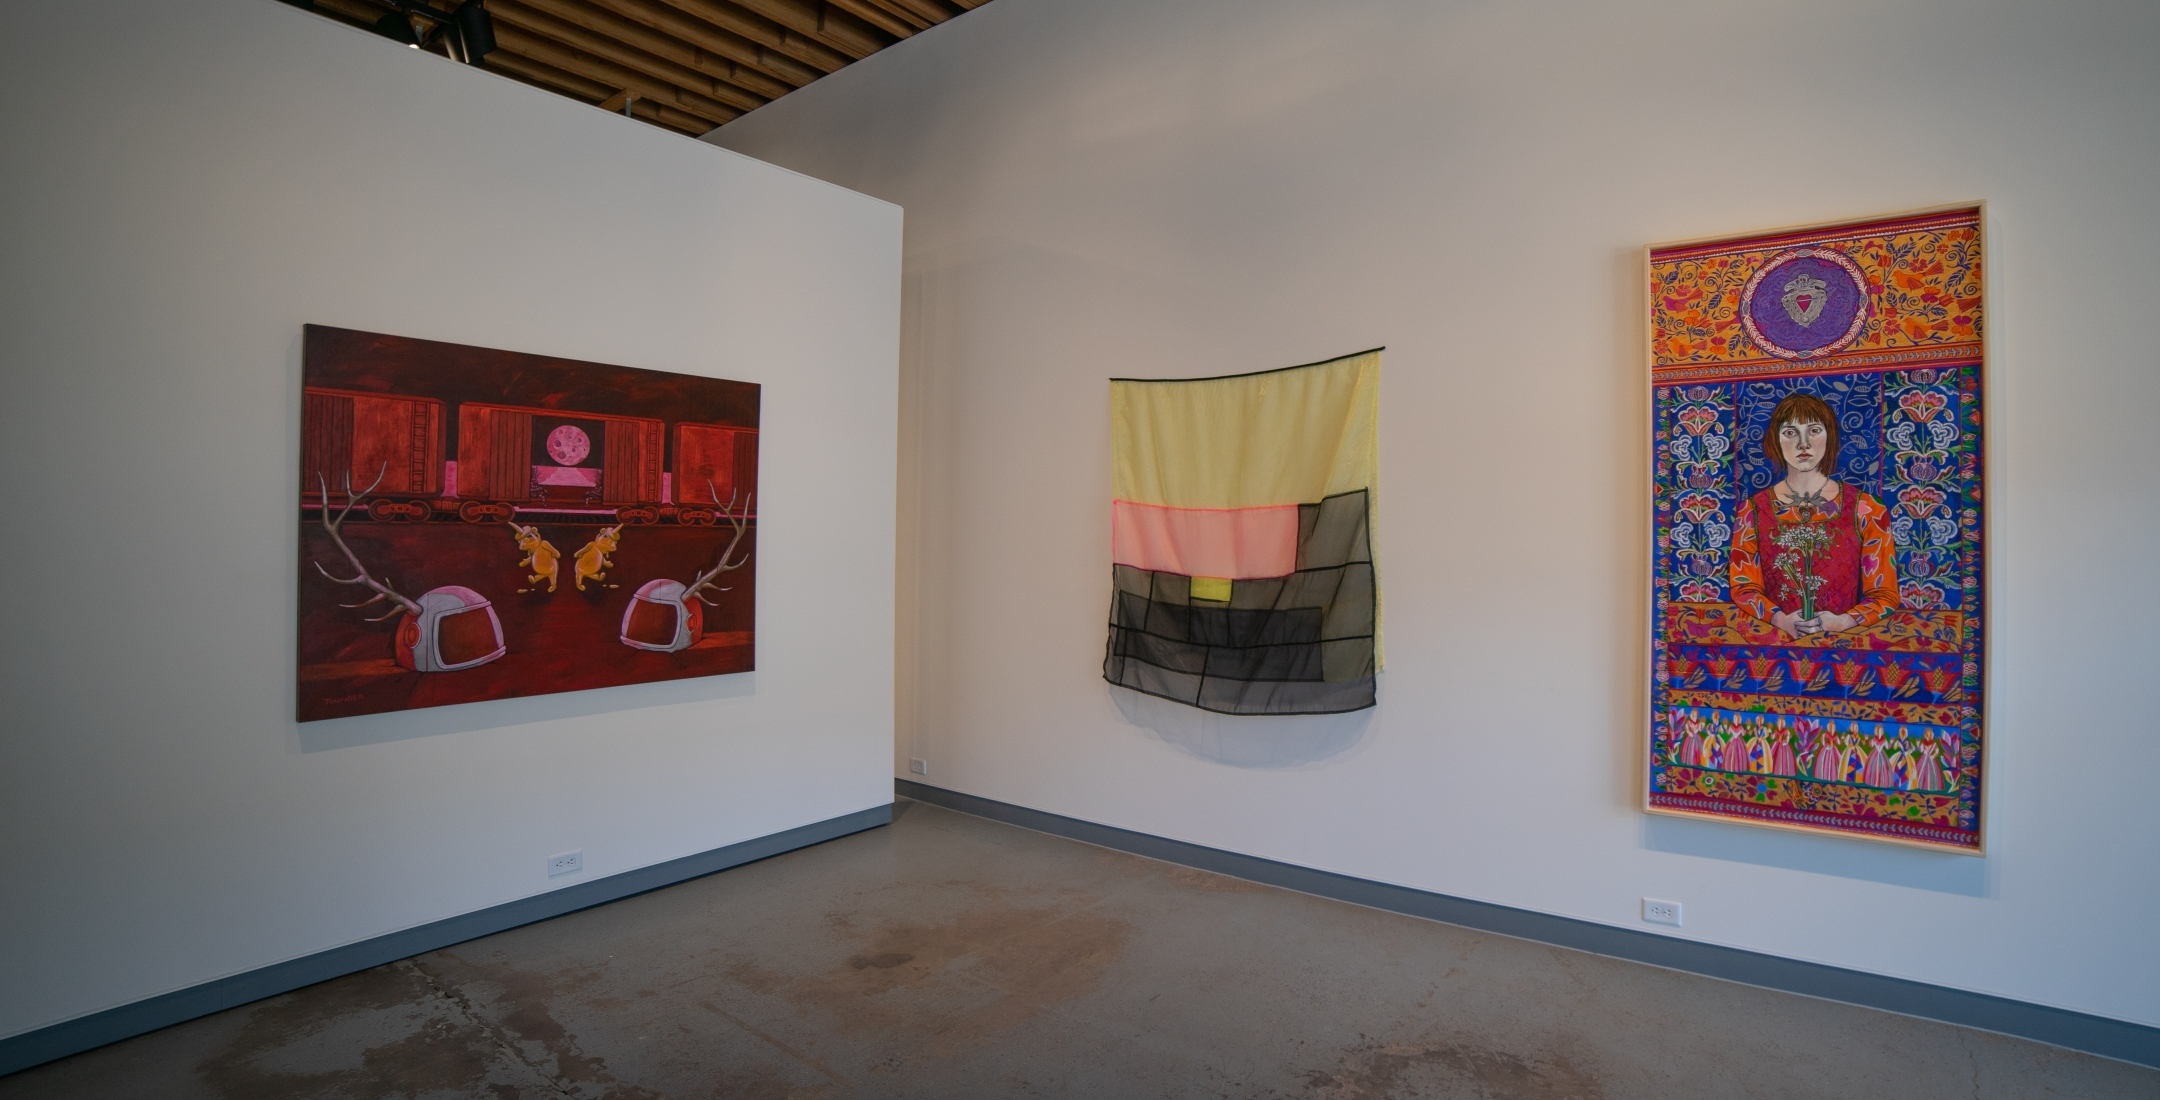 Sweep - a survey of contemporary painting